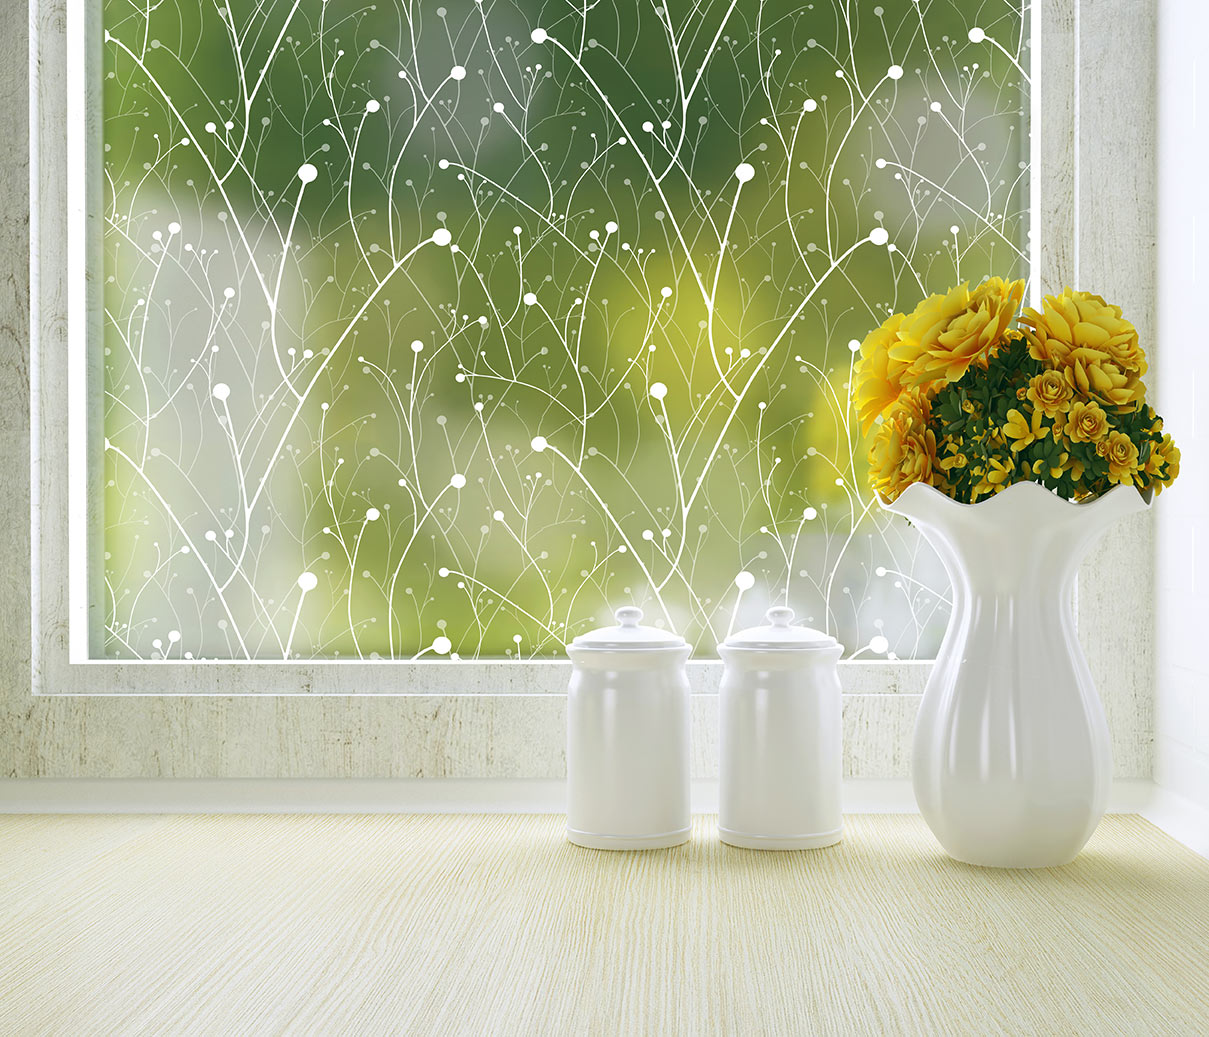 Willow modern window film decorative film for for Modern home decor